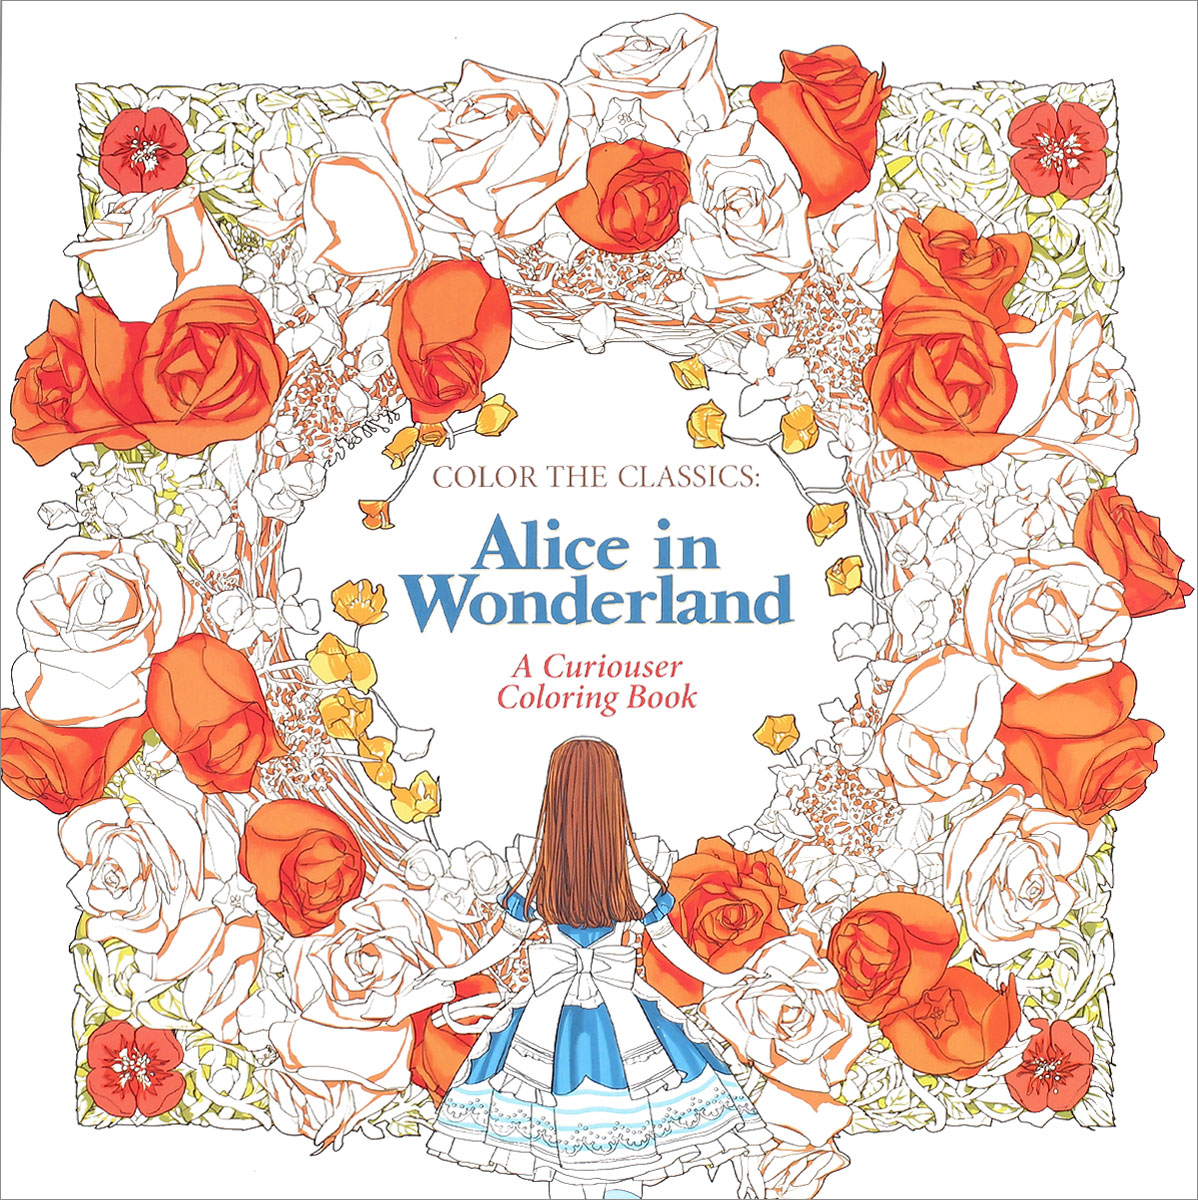 Color the Classics: Alice in Wonderland: A Curiouser Coloring Book 3000gb seagate st3000dm001 64mb 7200rpm sata3 desktop hdd 7200 14 page 5